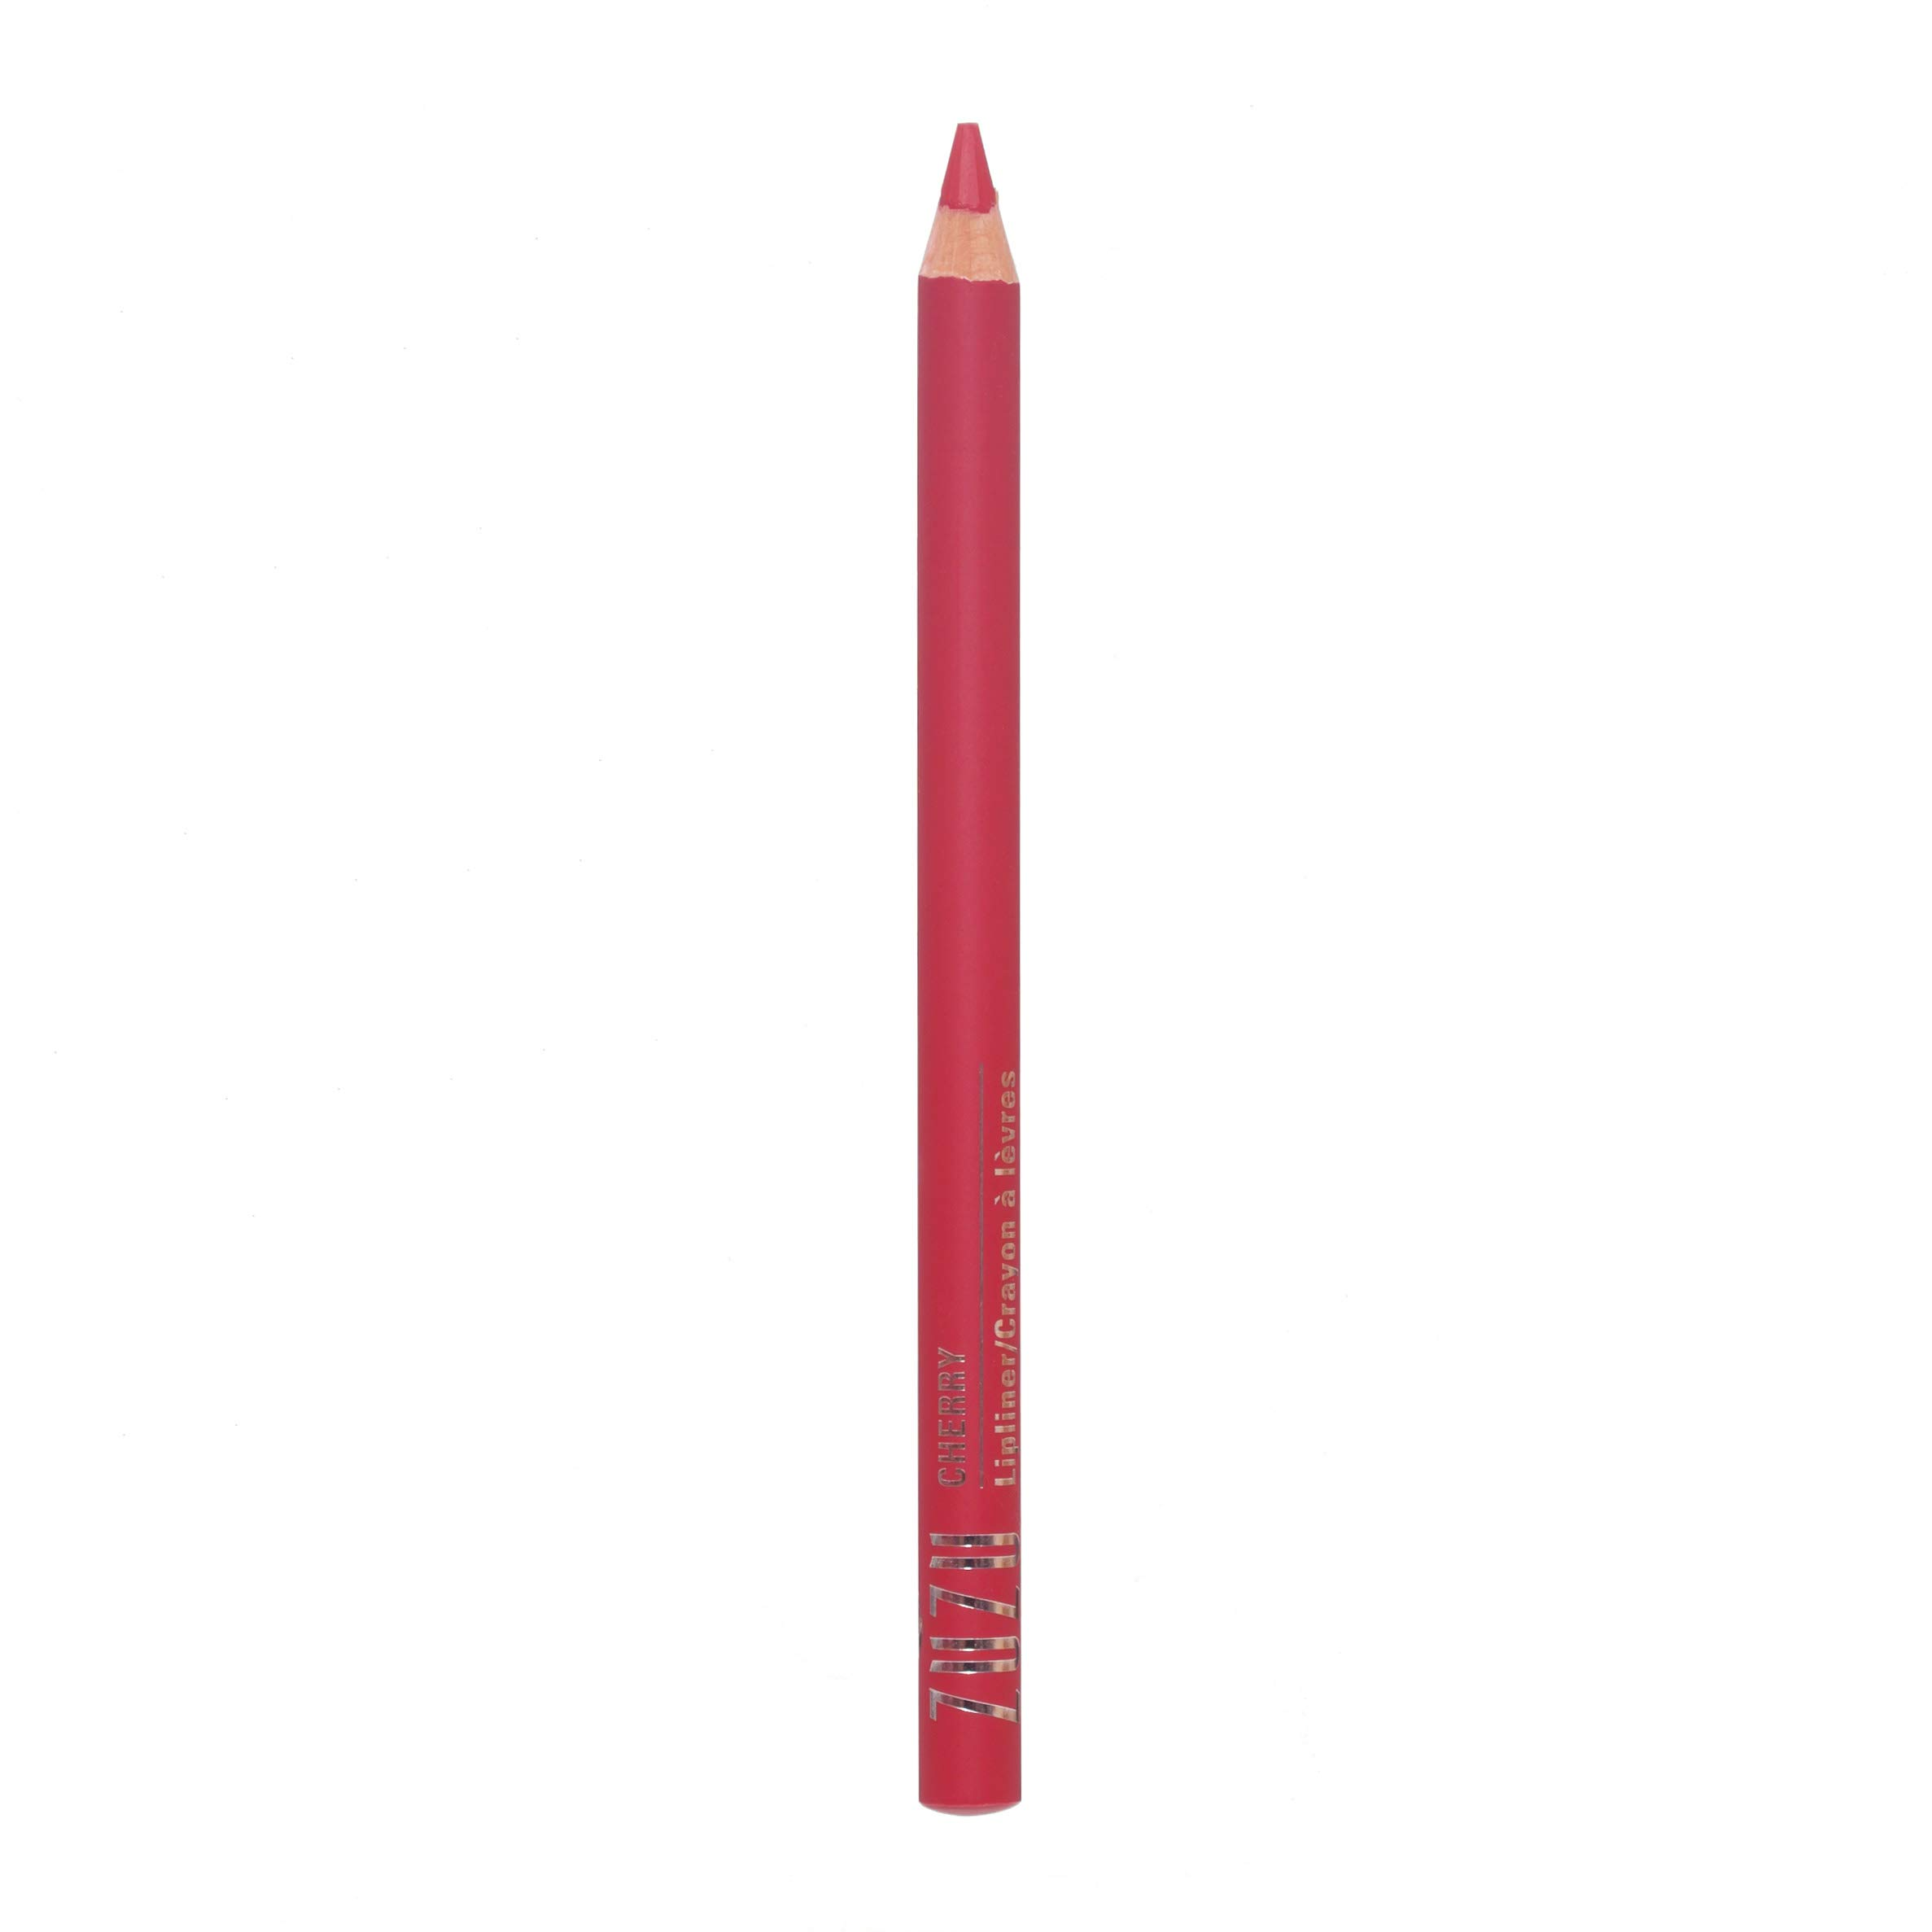 Zuzu Luxe Lipliner (Cherry)0.04 oz,richly pigmented and long lasting, Infused with Jojoba Seed Oil and Aloe for ulra hydrated lips. Natural, Paraben Free, Vegan, Gluten-free,Cruelty-free, Non GMO.